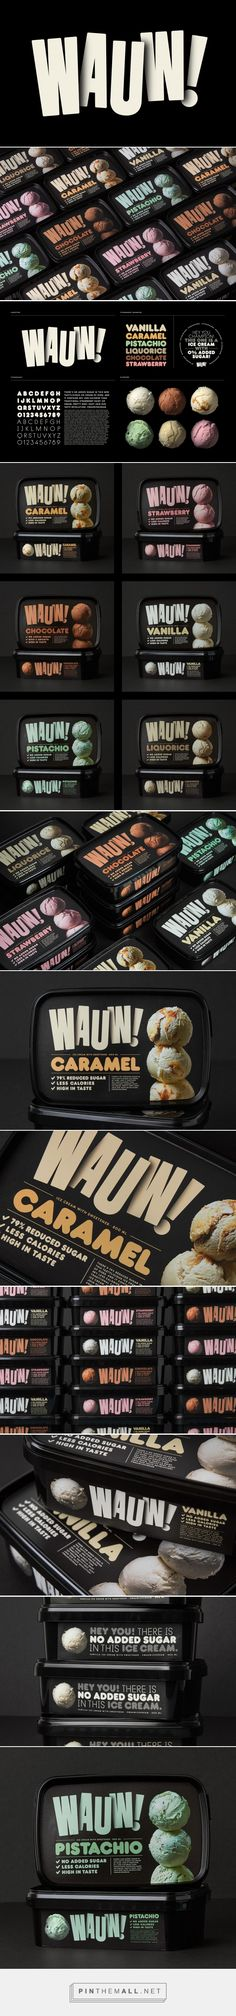 Wauw! Ice cream packaging design by SNASK - http://www.packagingoftheworld.com/2017/03/wauw.html